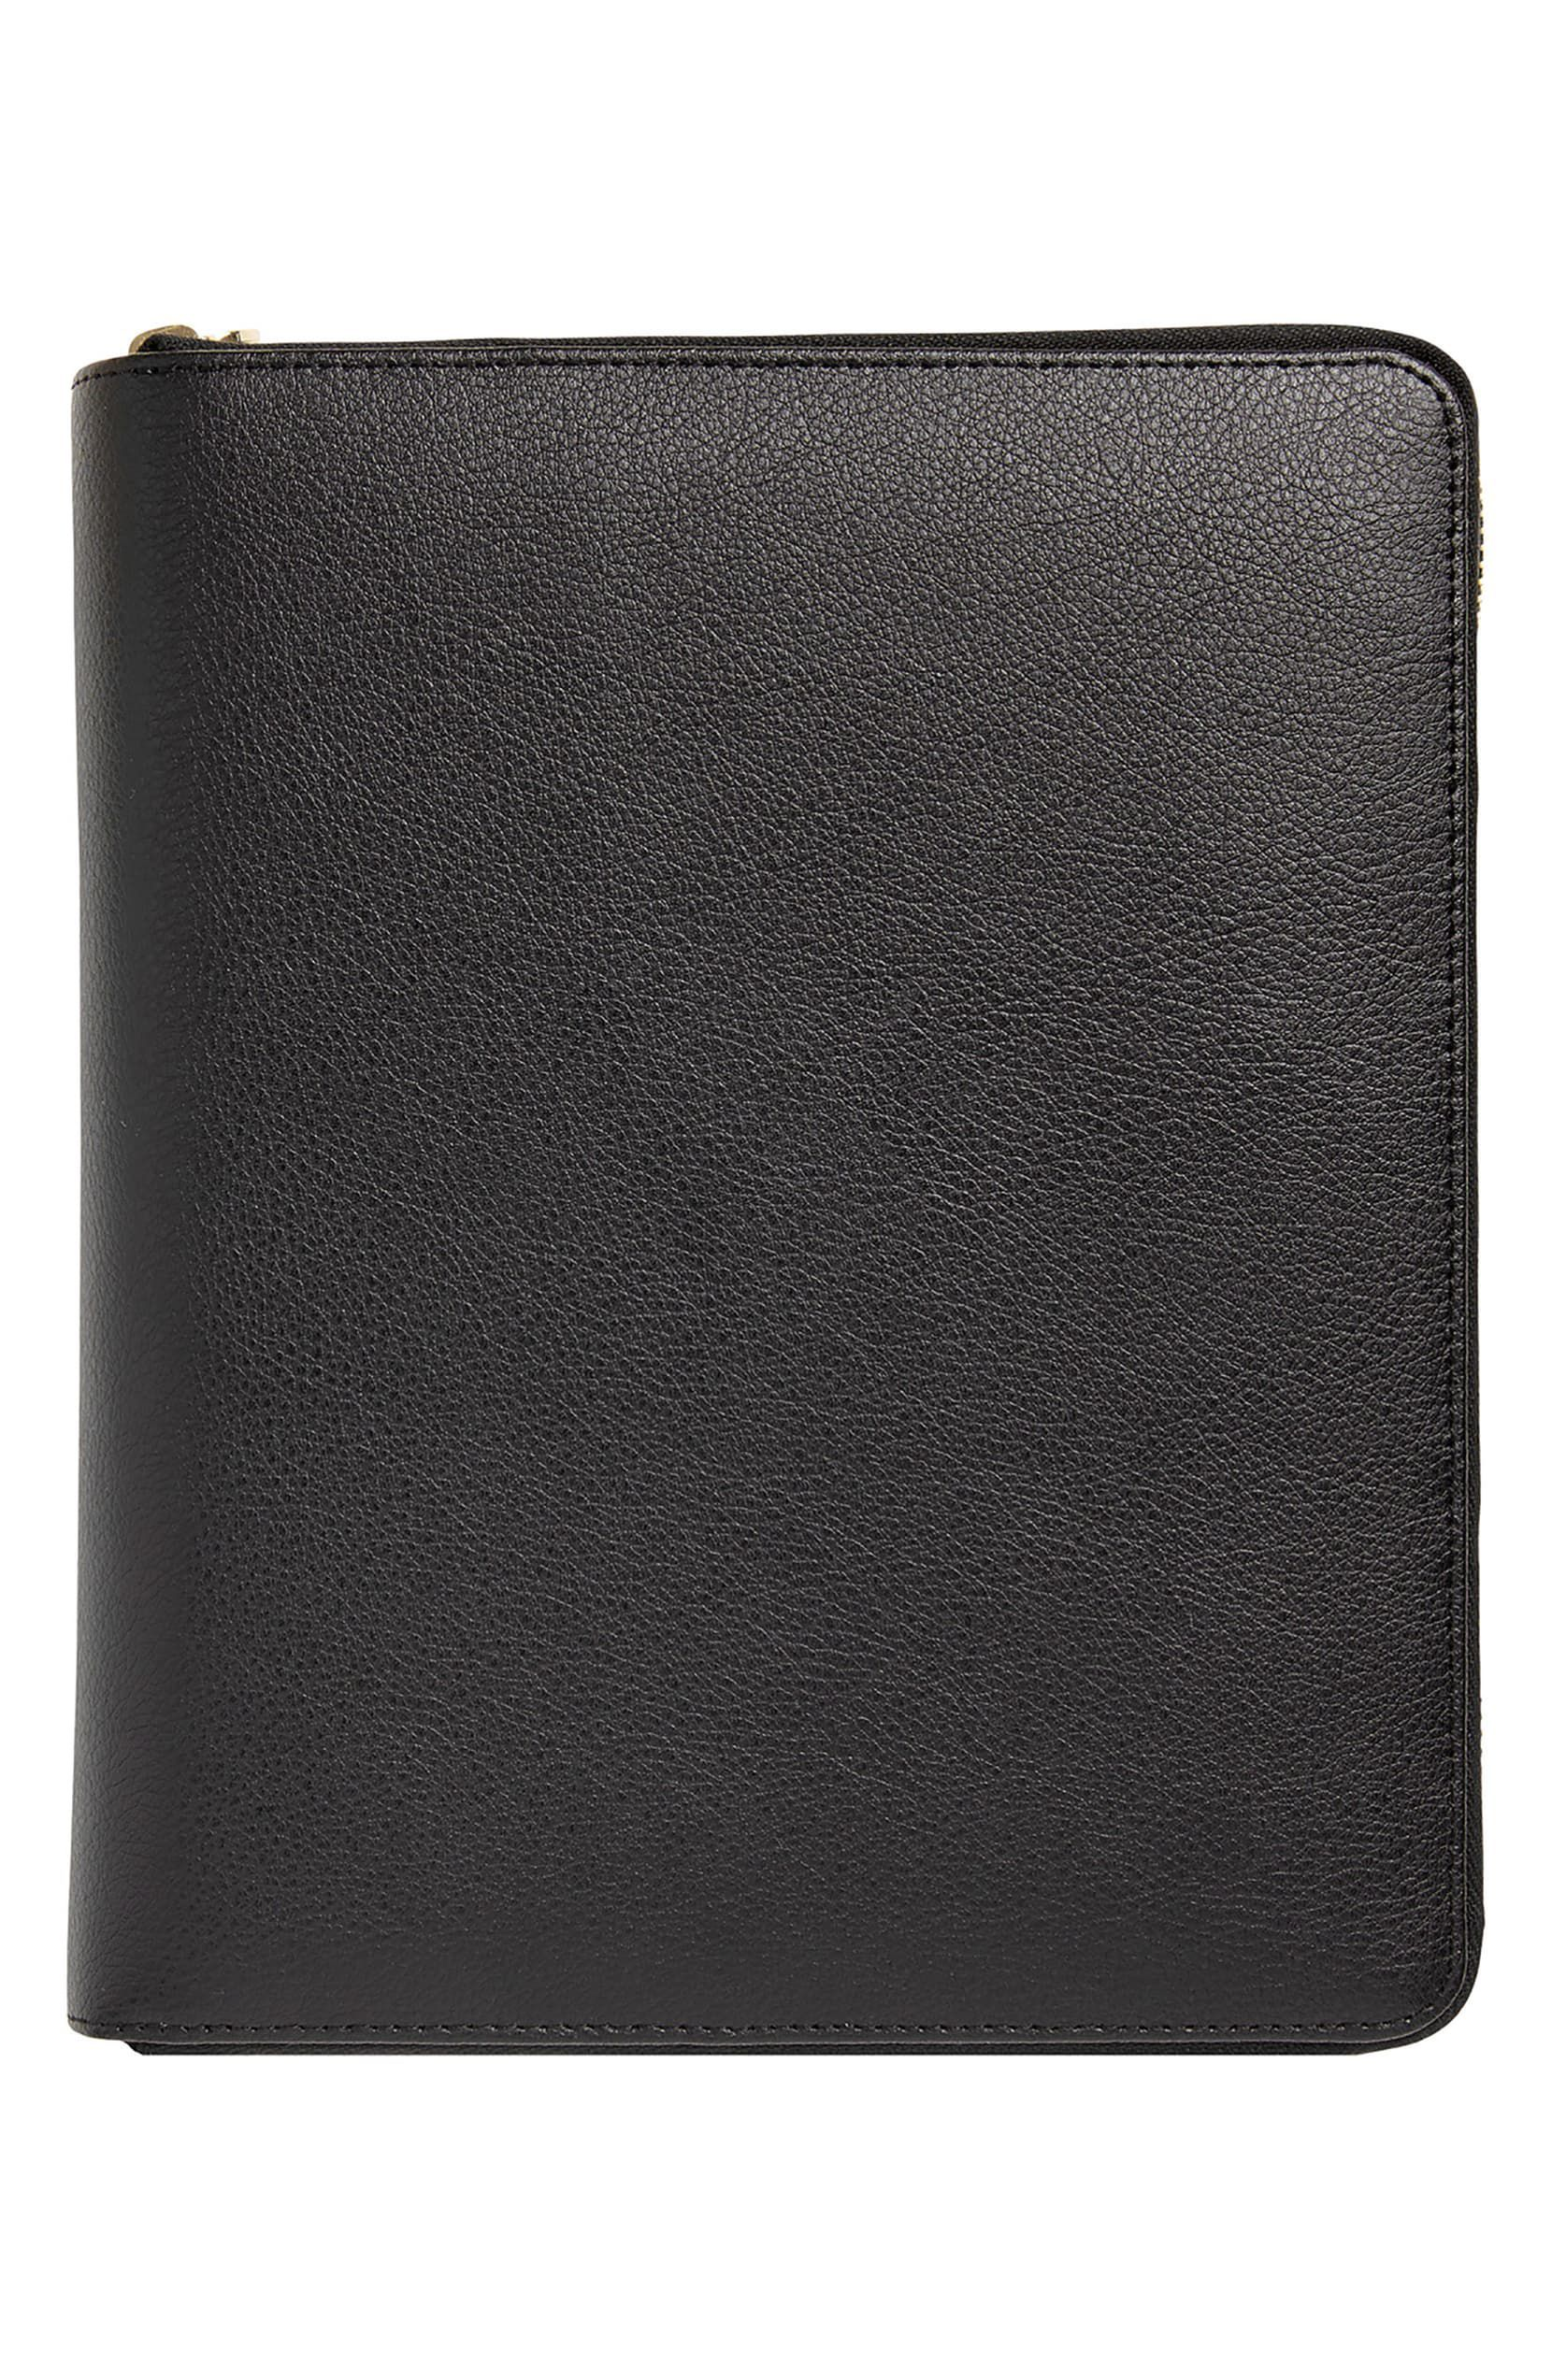 Zip-Around Leather 18-Month Perpetual Planner